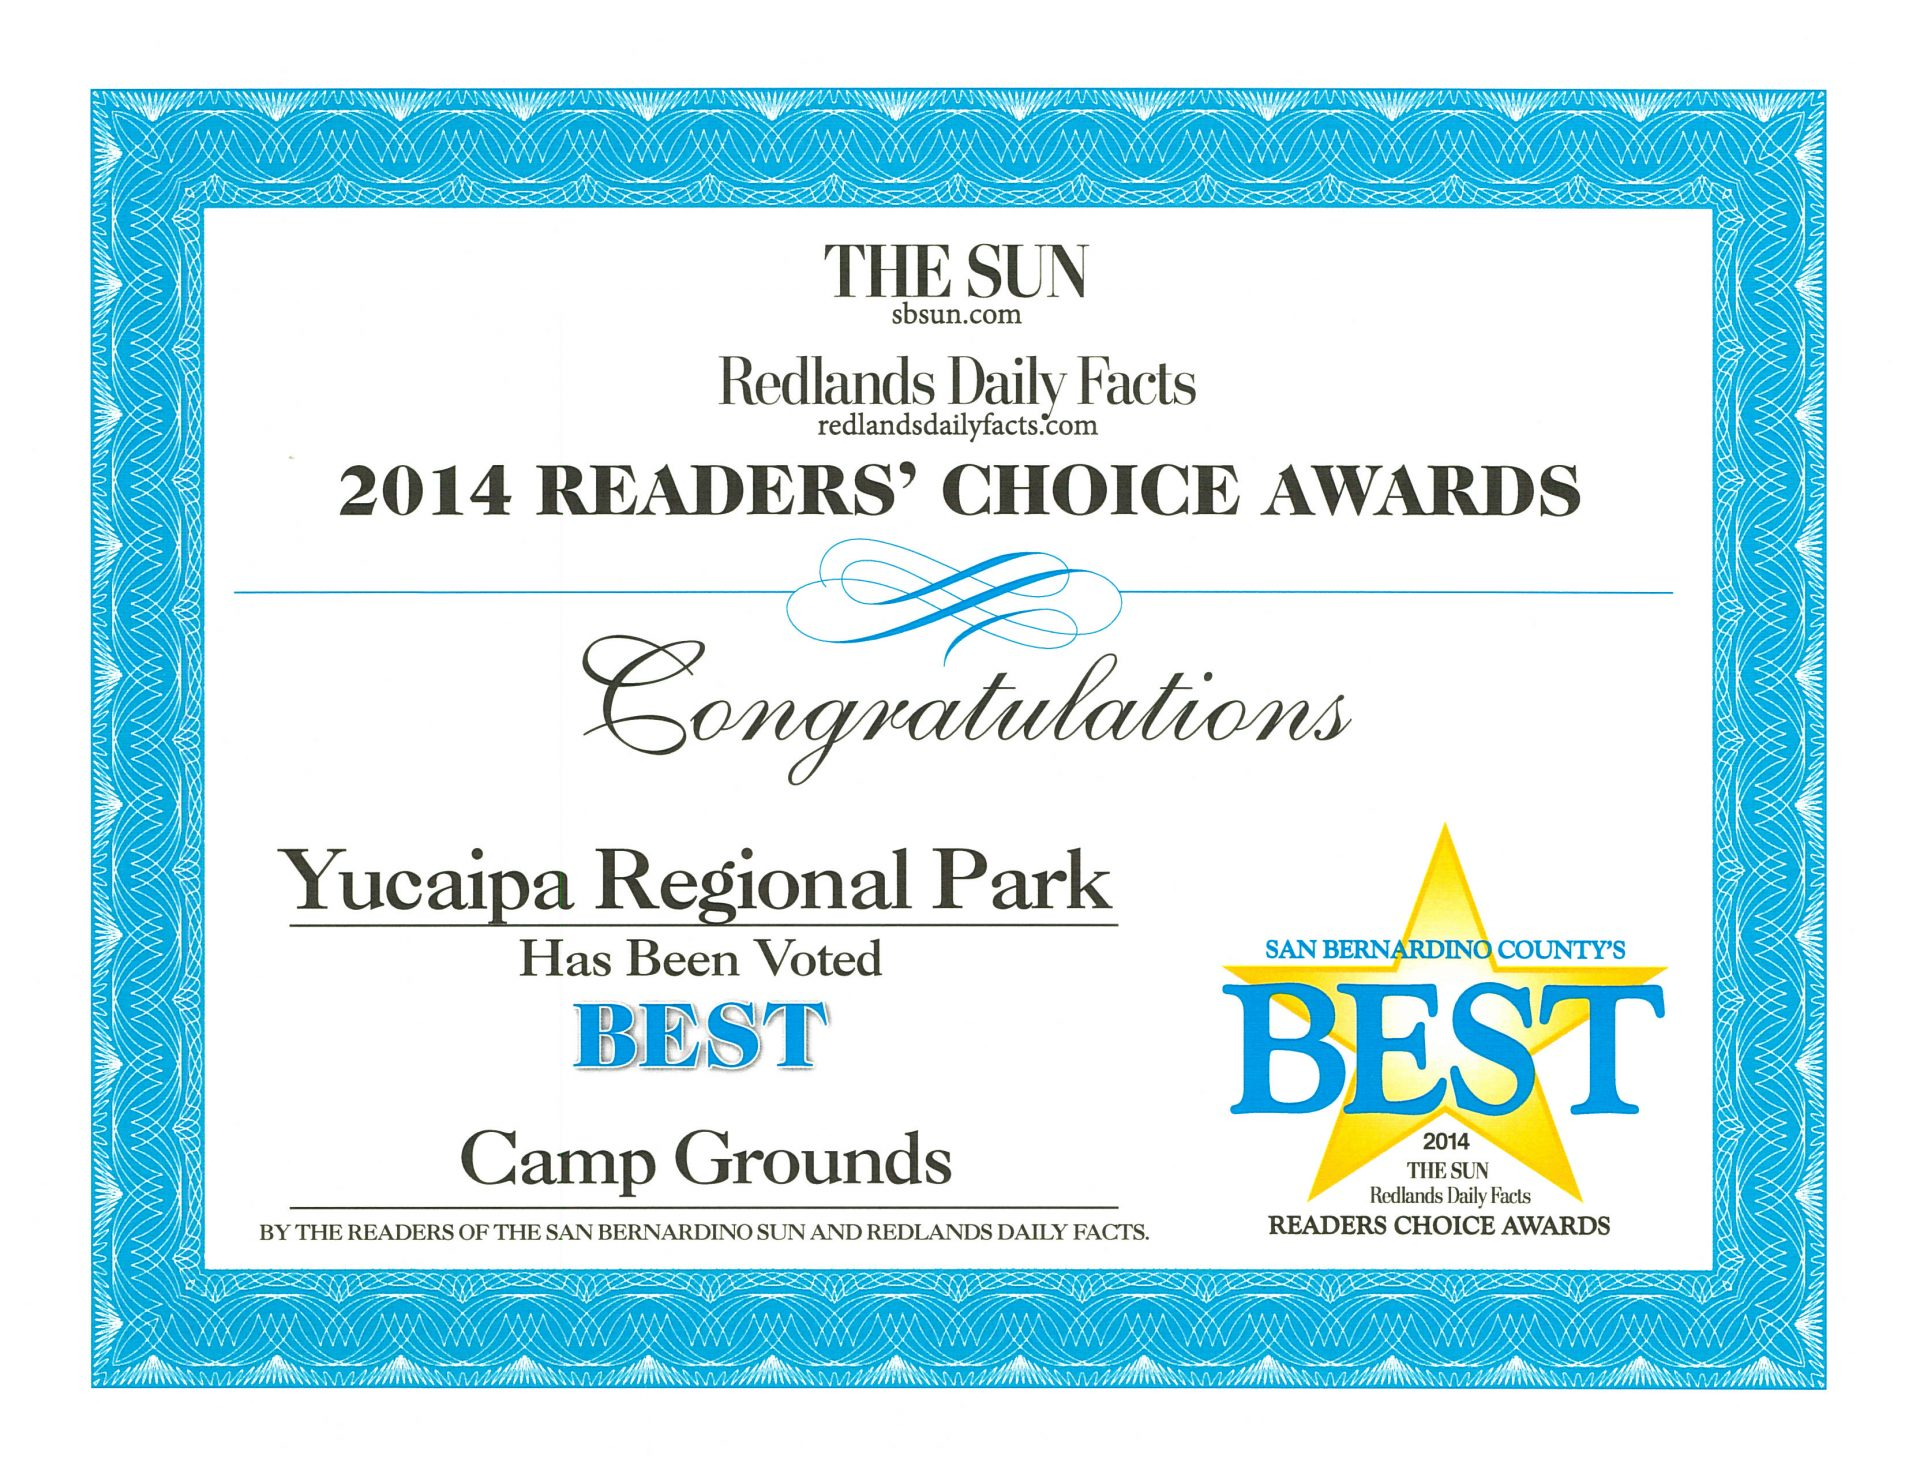 2014 Best Campground award